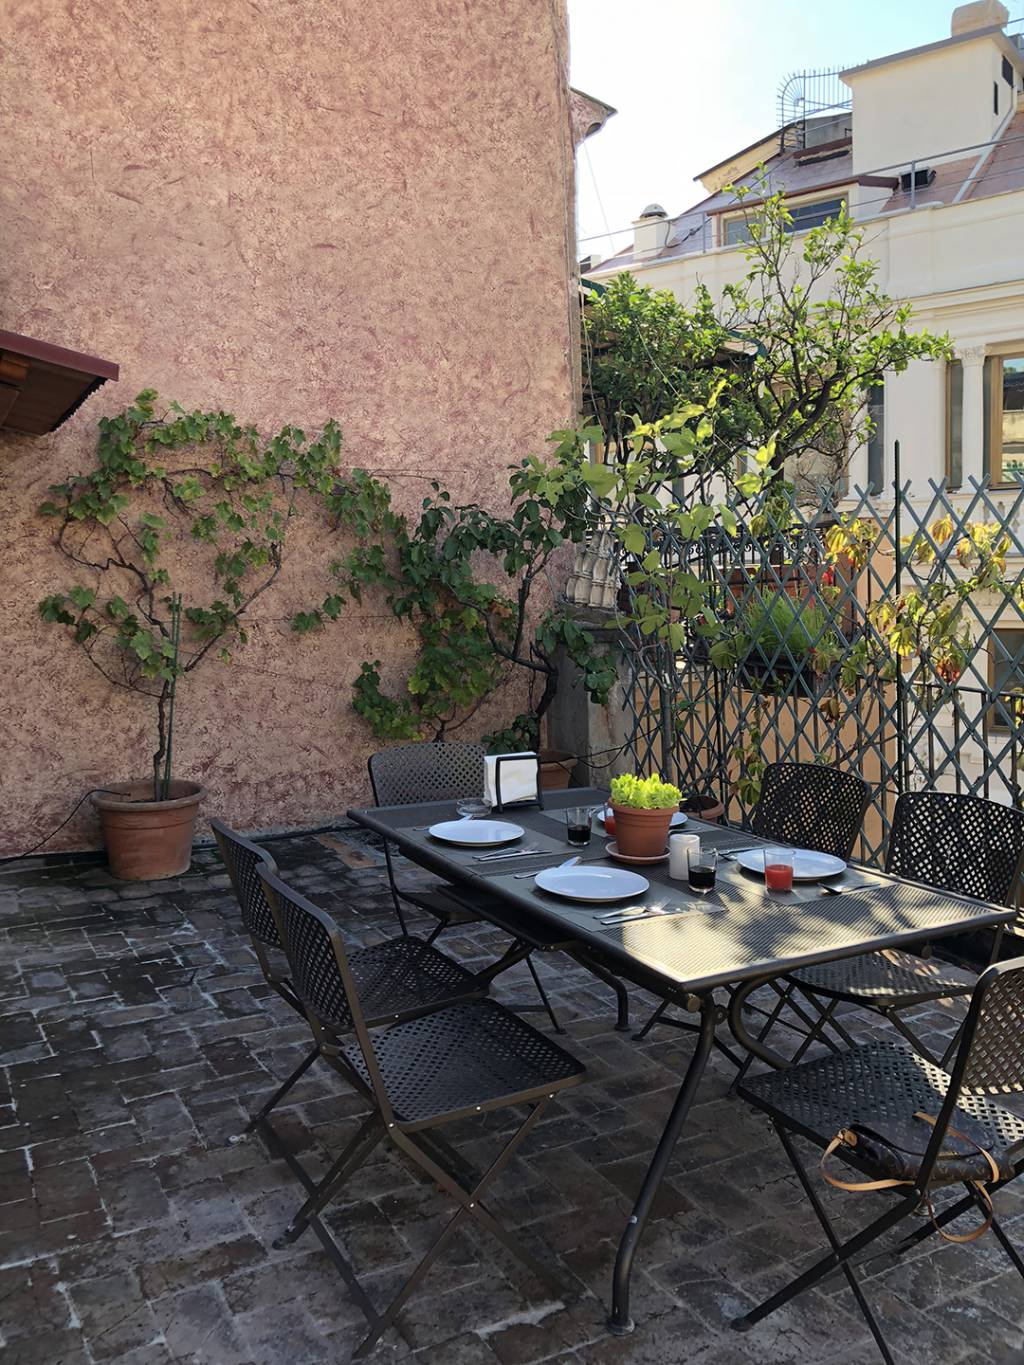 gh-collection-rome-gh-apartments-terrace-2-23-07-18-18-06-06